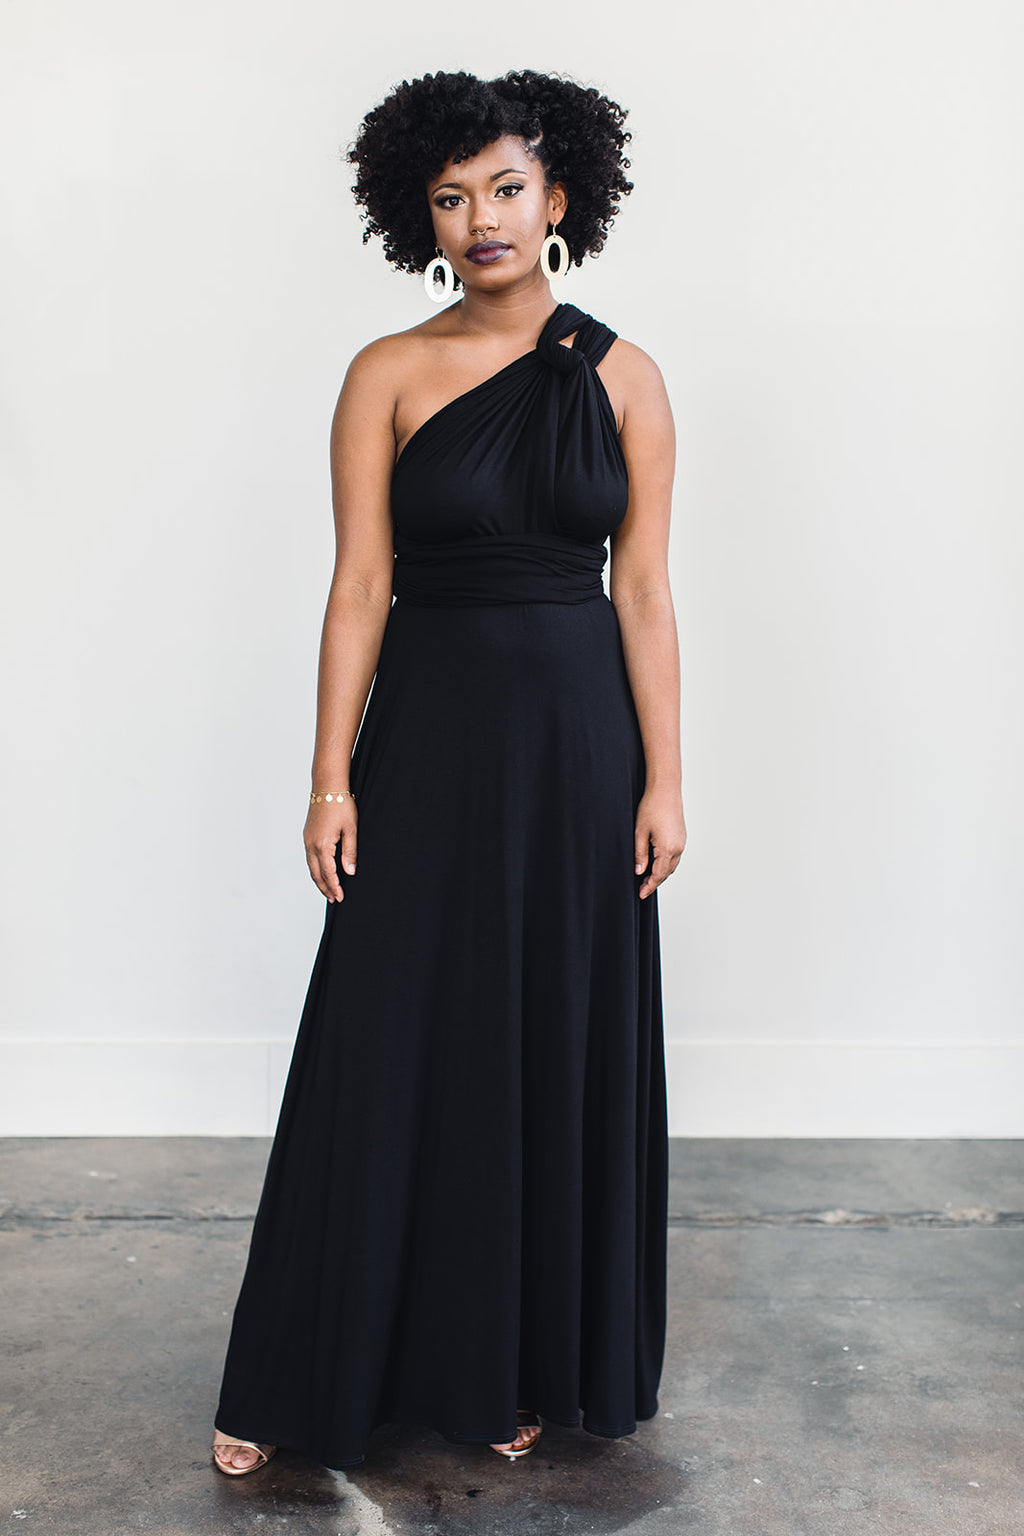 Black, floor length infinity dress